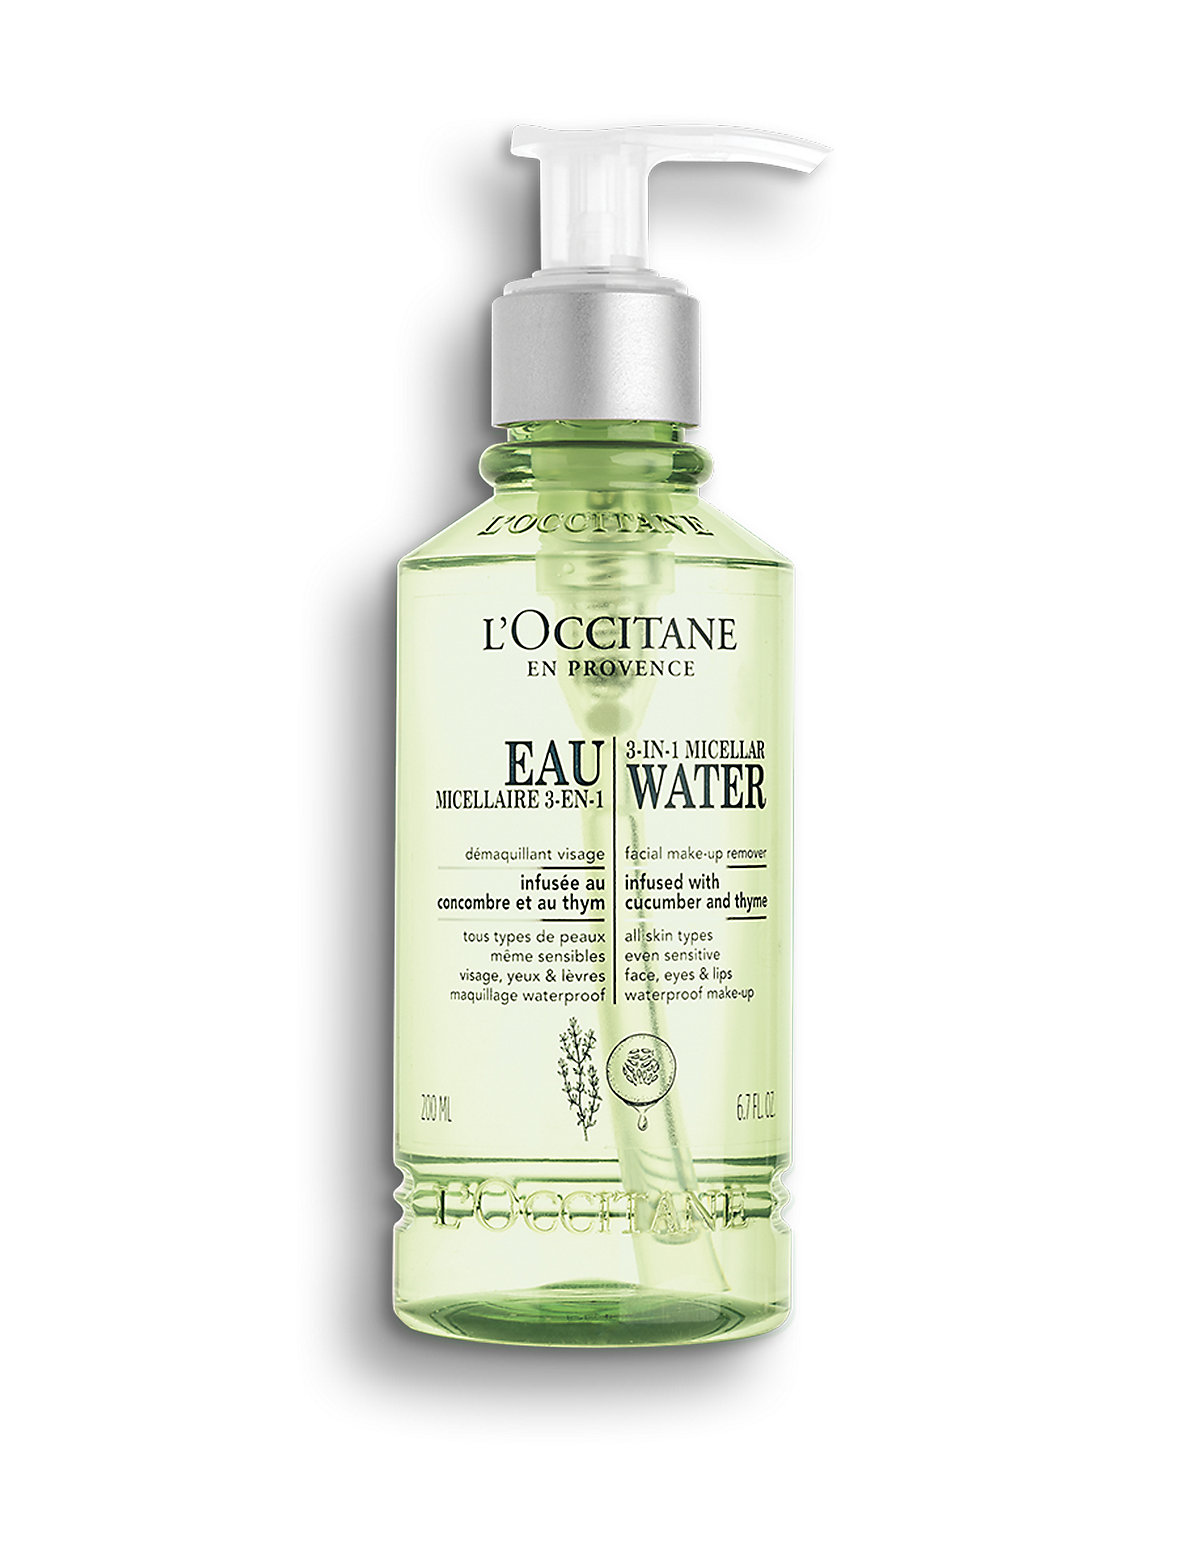 L'Occitane Cleansing Infusions 3 in 1 Micellar Water 200ml